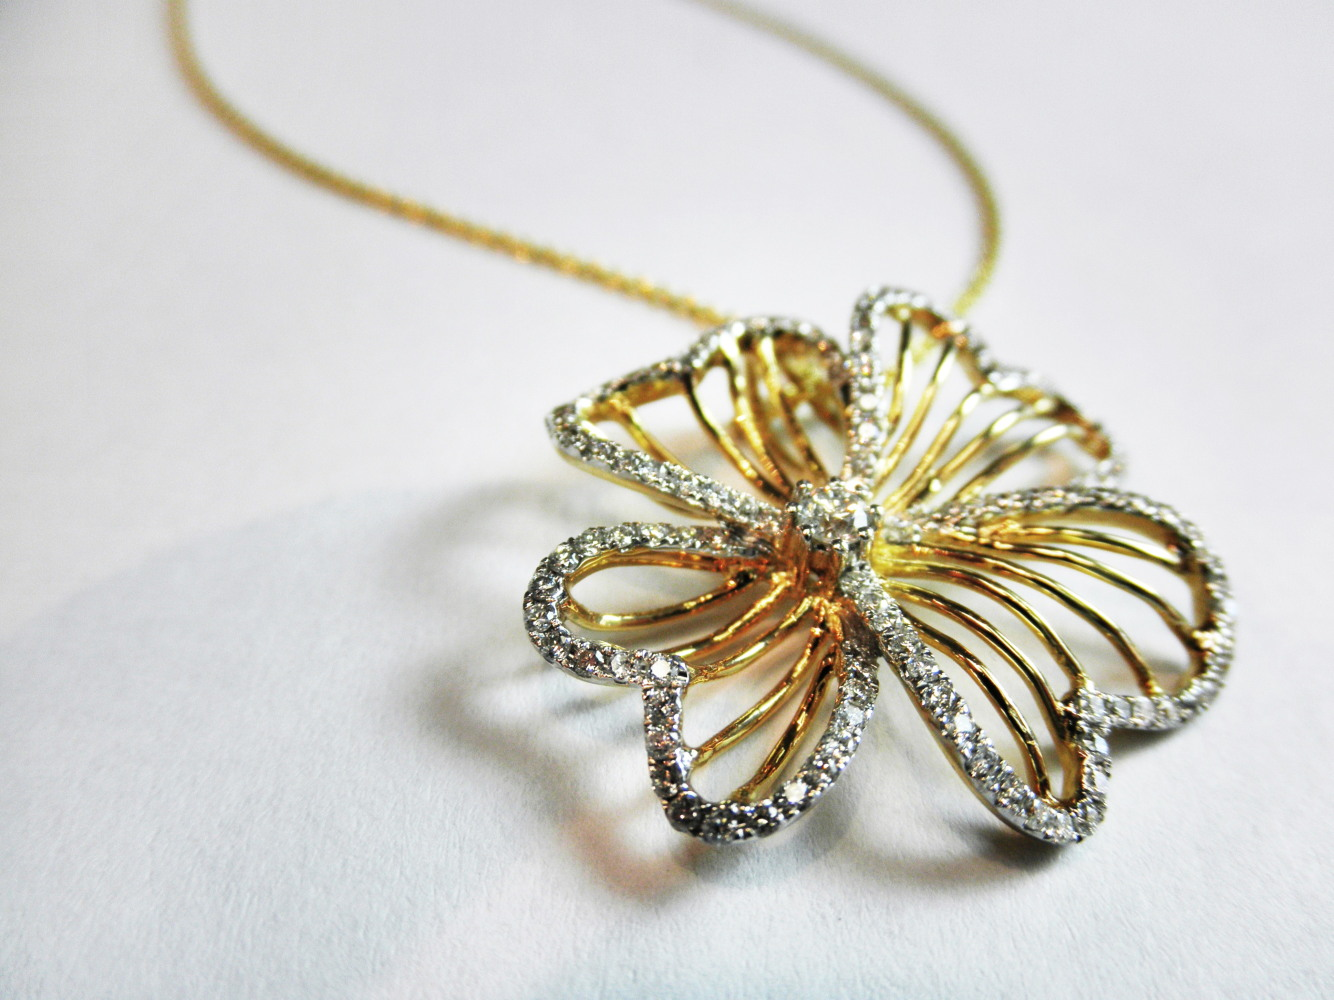 Freedman Jewelers Stunning Jewelry for the Holidays